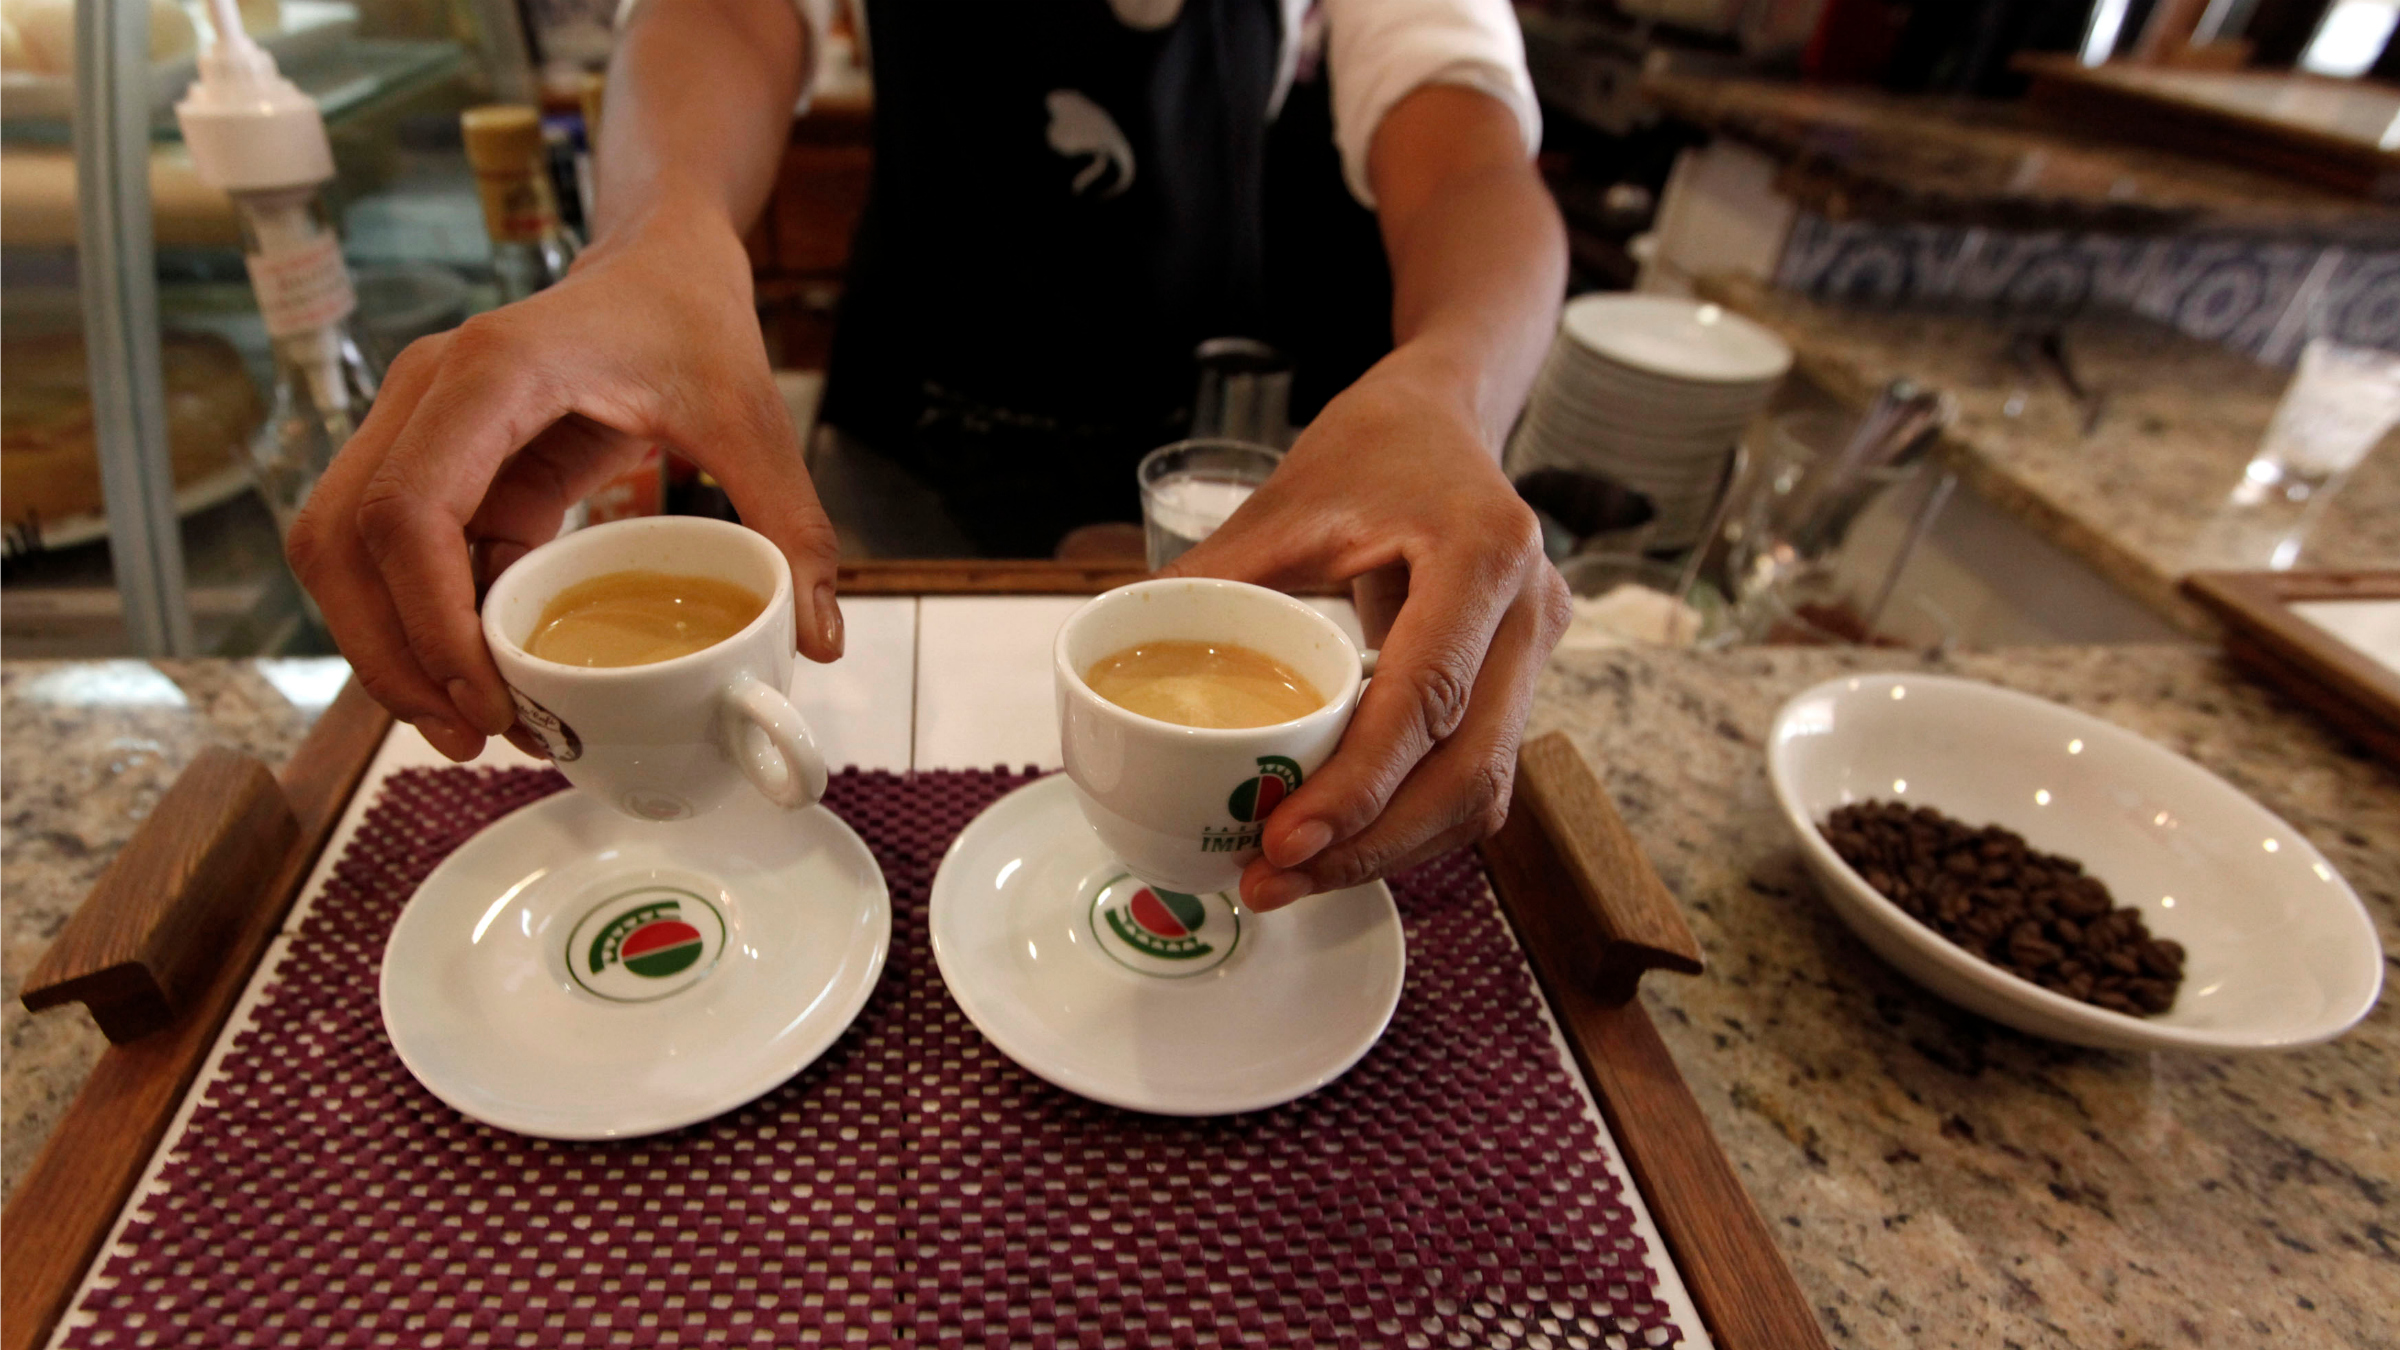 A waitress serves coffee to customers at a coffee bar in Sao Paulo.